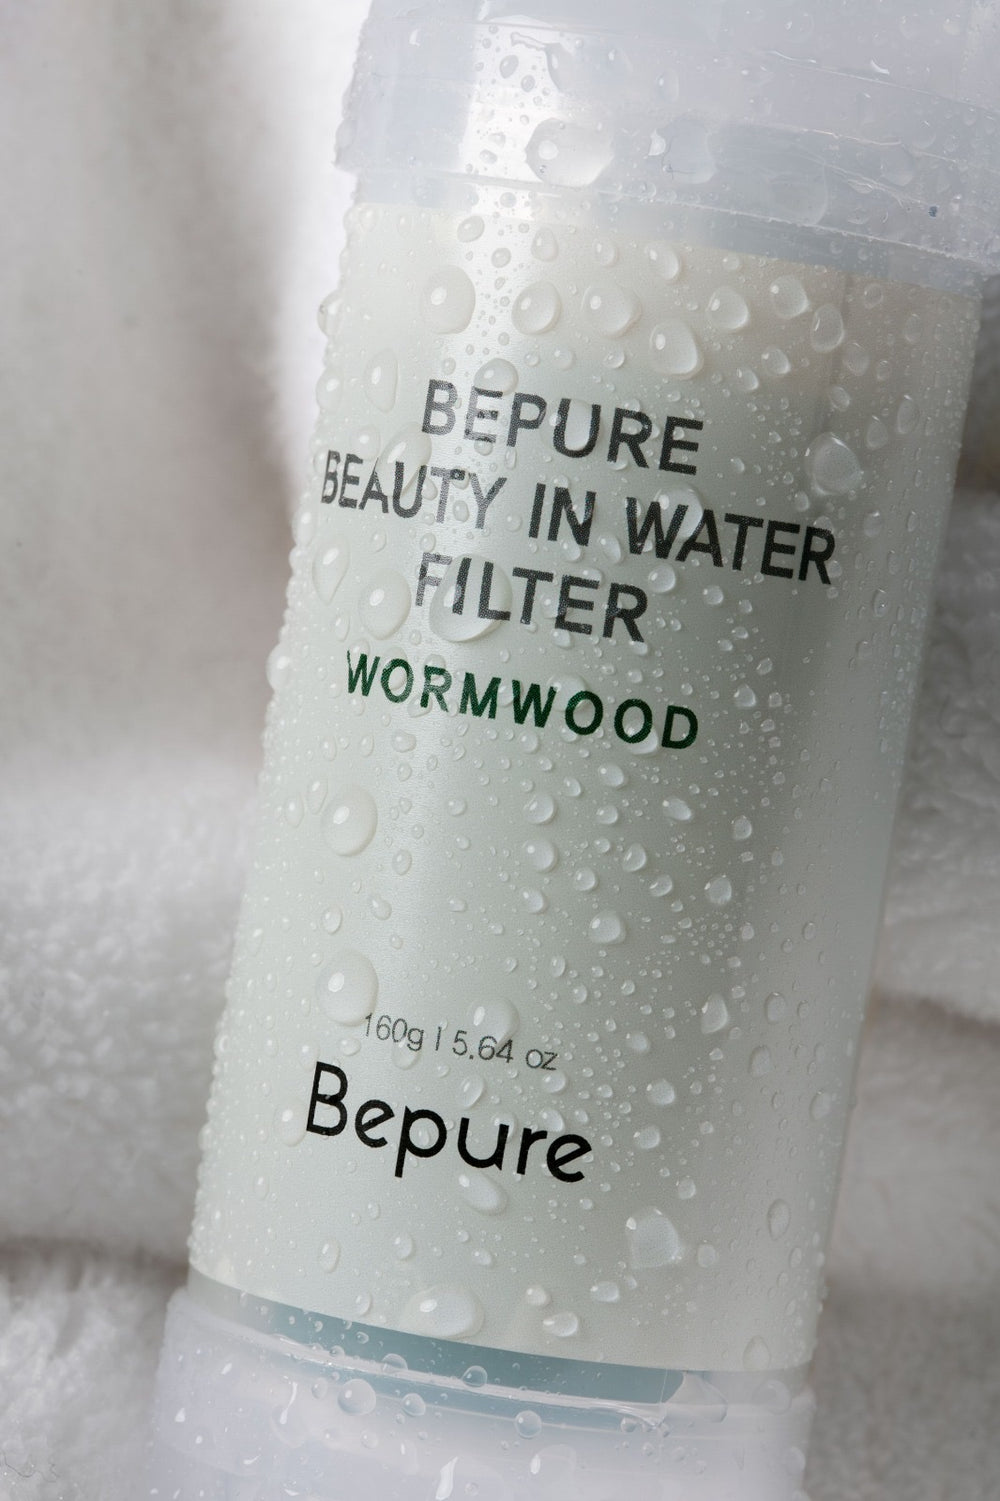 *PREORDER* BEPURE BEAUTY IN WATER FILTER